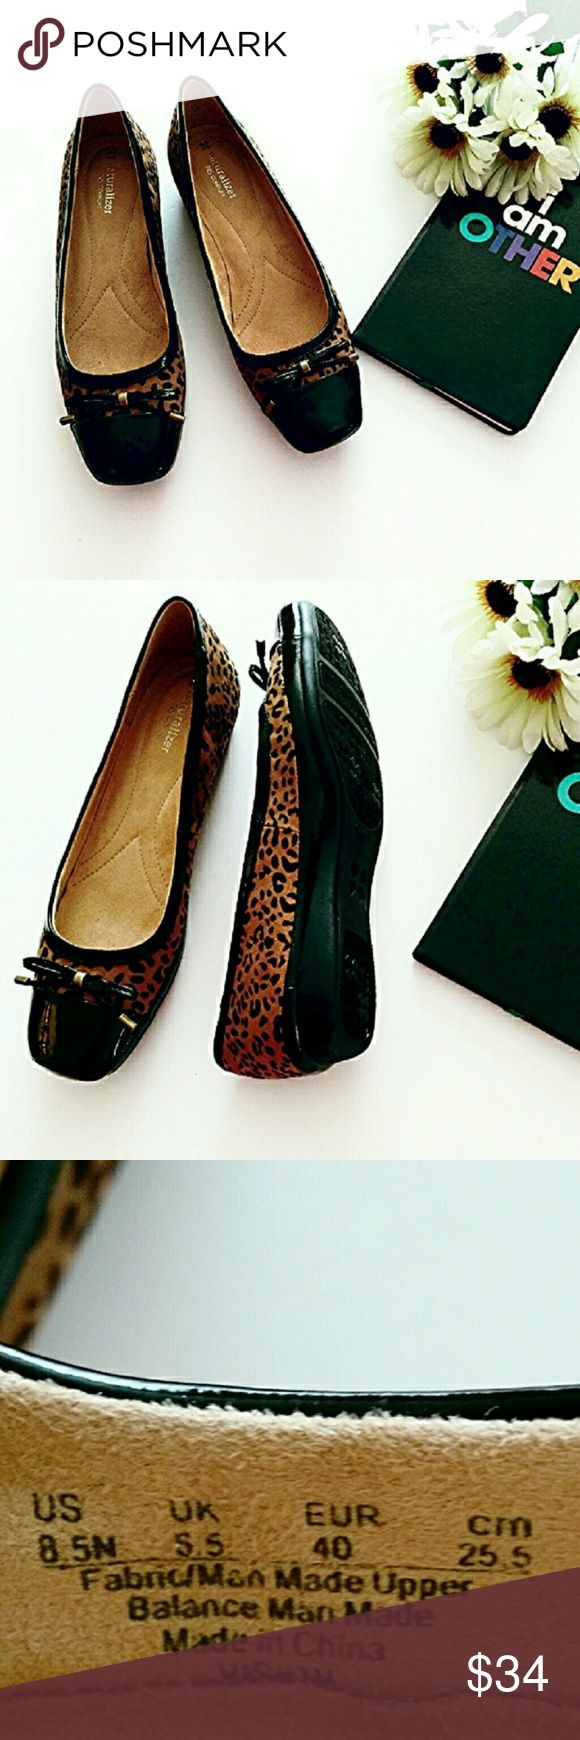 "NWOT Naturalizer Animal Print Ballet Flats🌷Narrow Trimmed in black patent leather w/ matching bow w/brass tone hardware. Comfort insole, black traction out sole. Flat front ballet cap toe. Approx 1/2"" heel. Worn to try on. In new condition. All manmade materials. *Ask questions B4 U Buy* * Note: traditionally the difference between narrow, medium and wide widths shoes is 1/4 in. in each designation* Measurement provided upon request. Naturalizer Shoes Flats & Loafers"